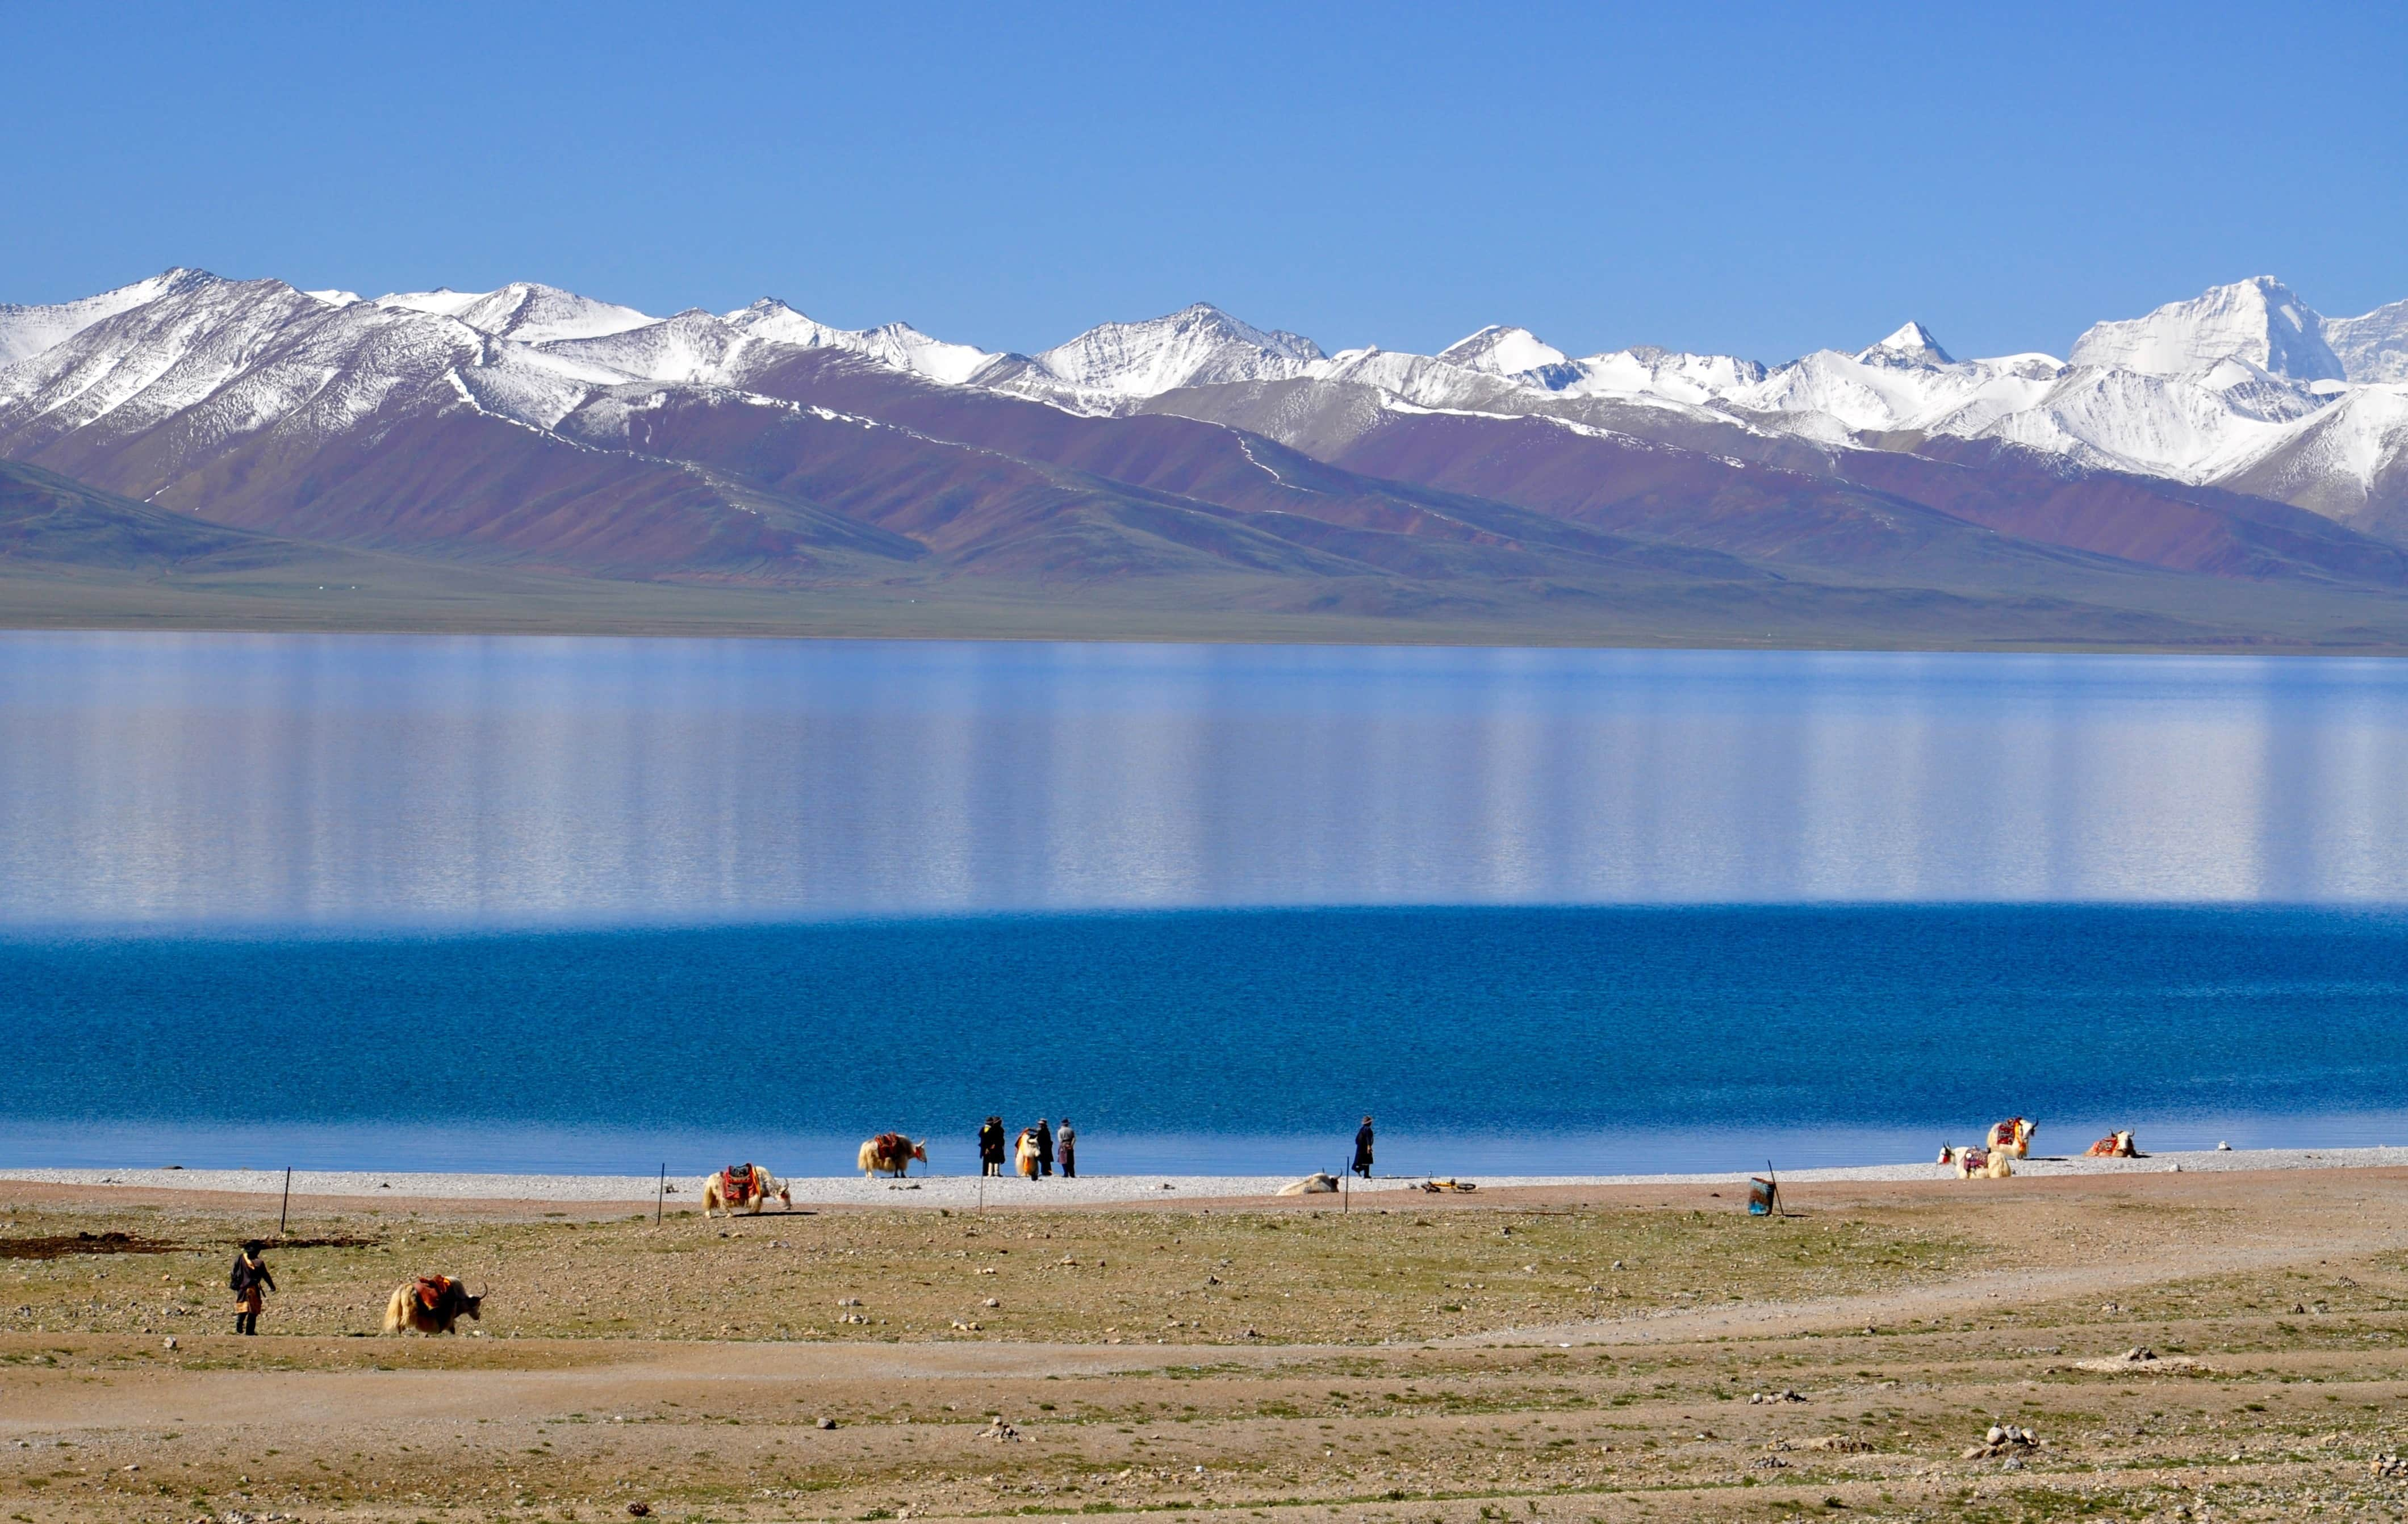 Yaks by the Namtso lake in Tibet